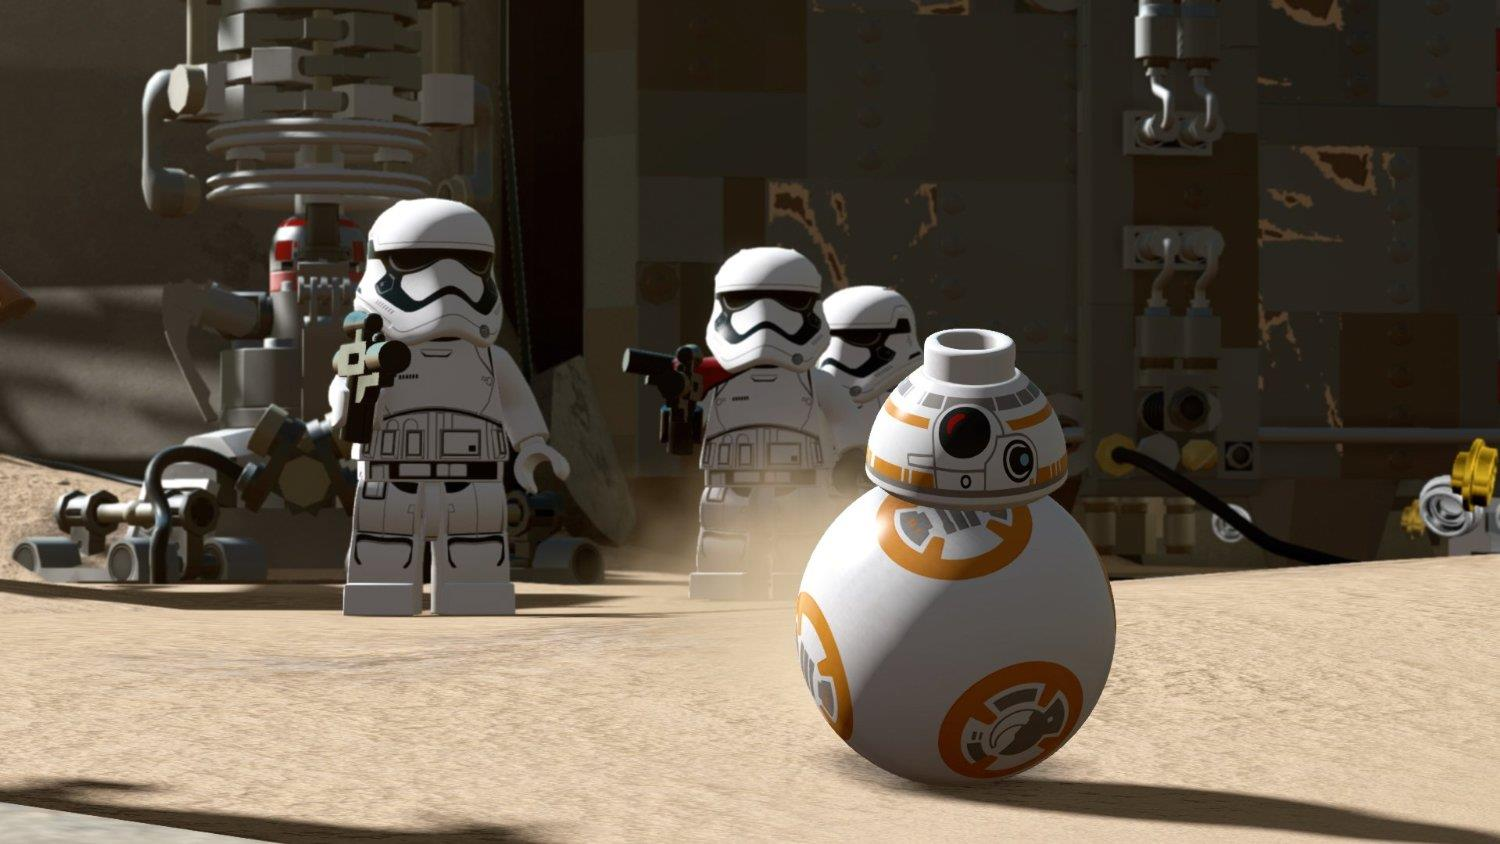 PS4 LEGO STAR WARS: THE FORCE AWAKENS for SONY PLAYSTATION